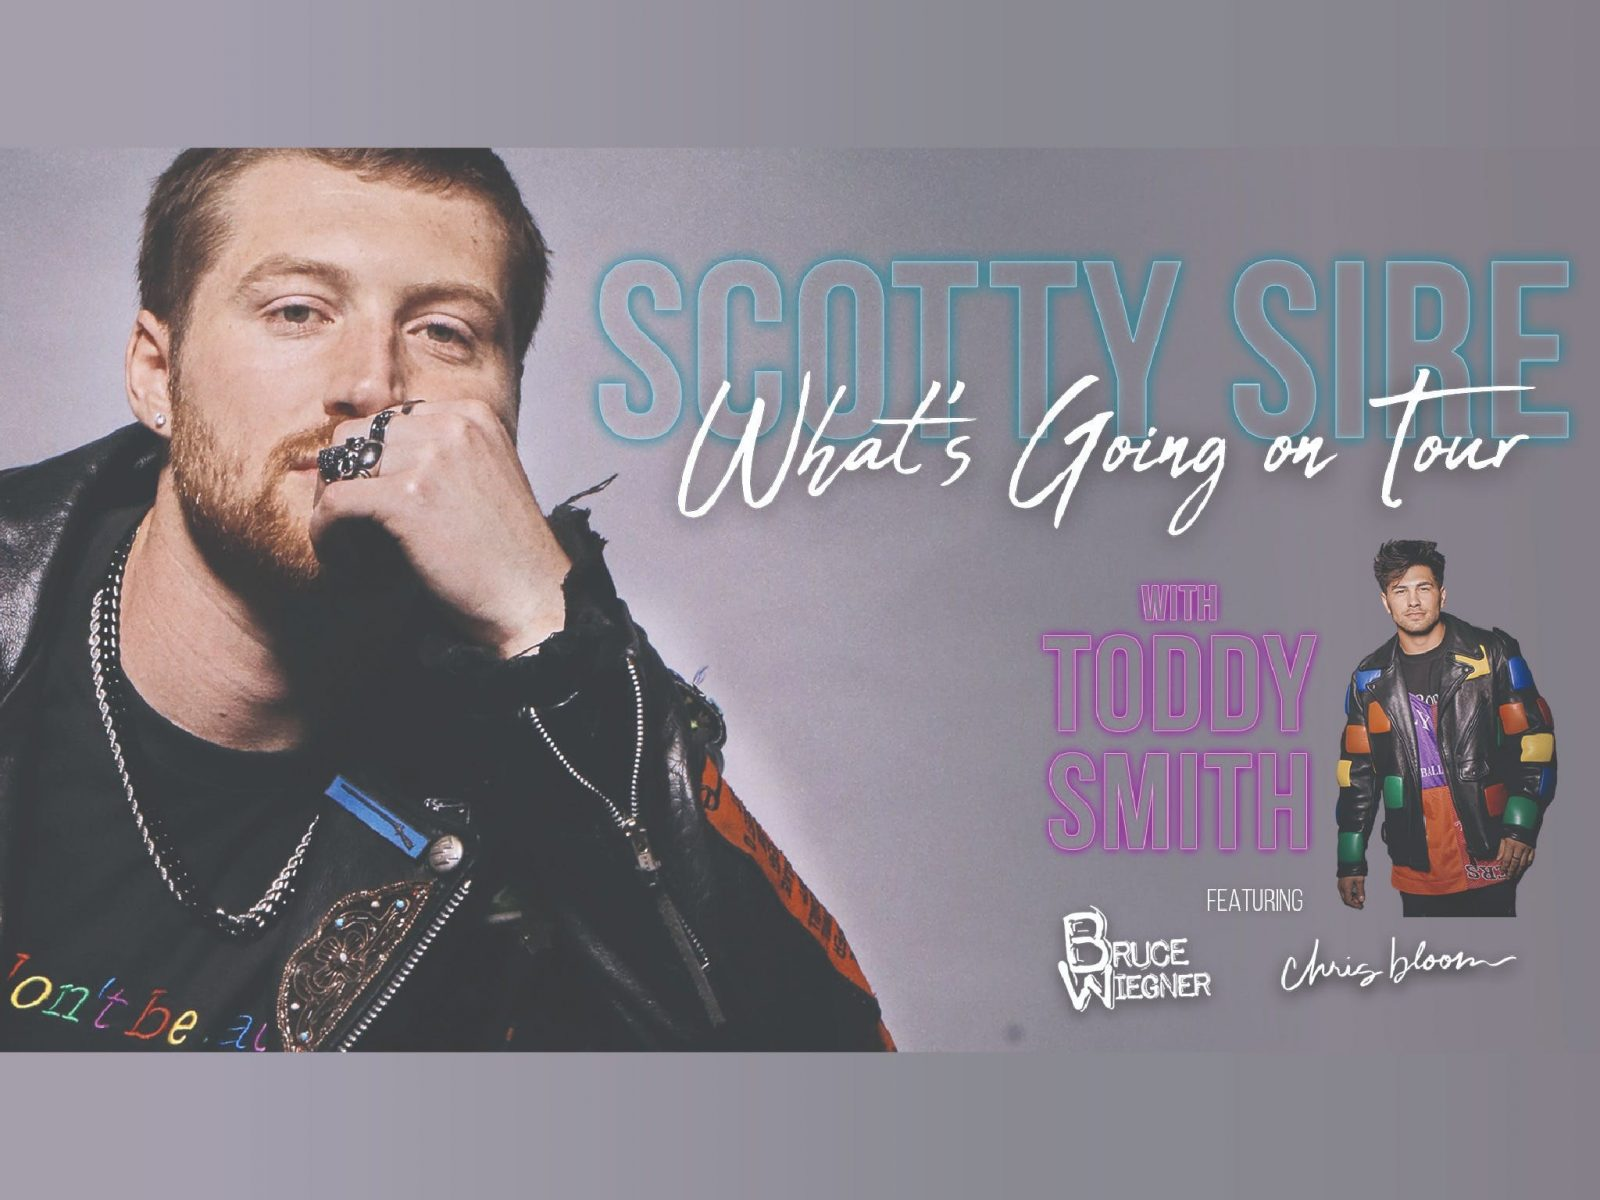 Scotty Sire - What's Going On Tour (with Toddy Smith)